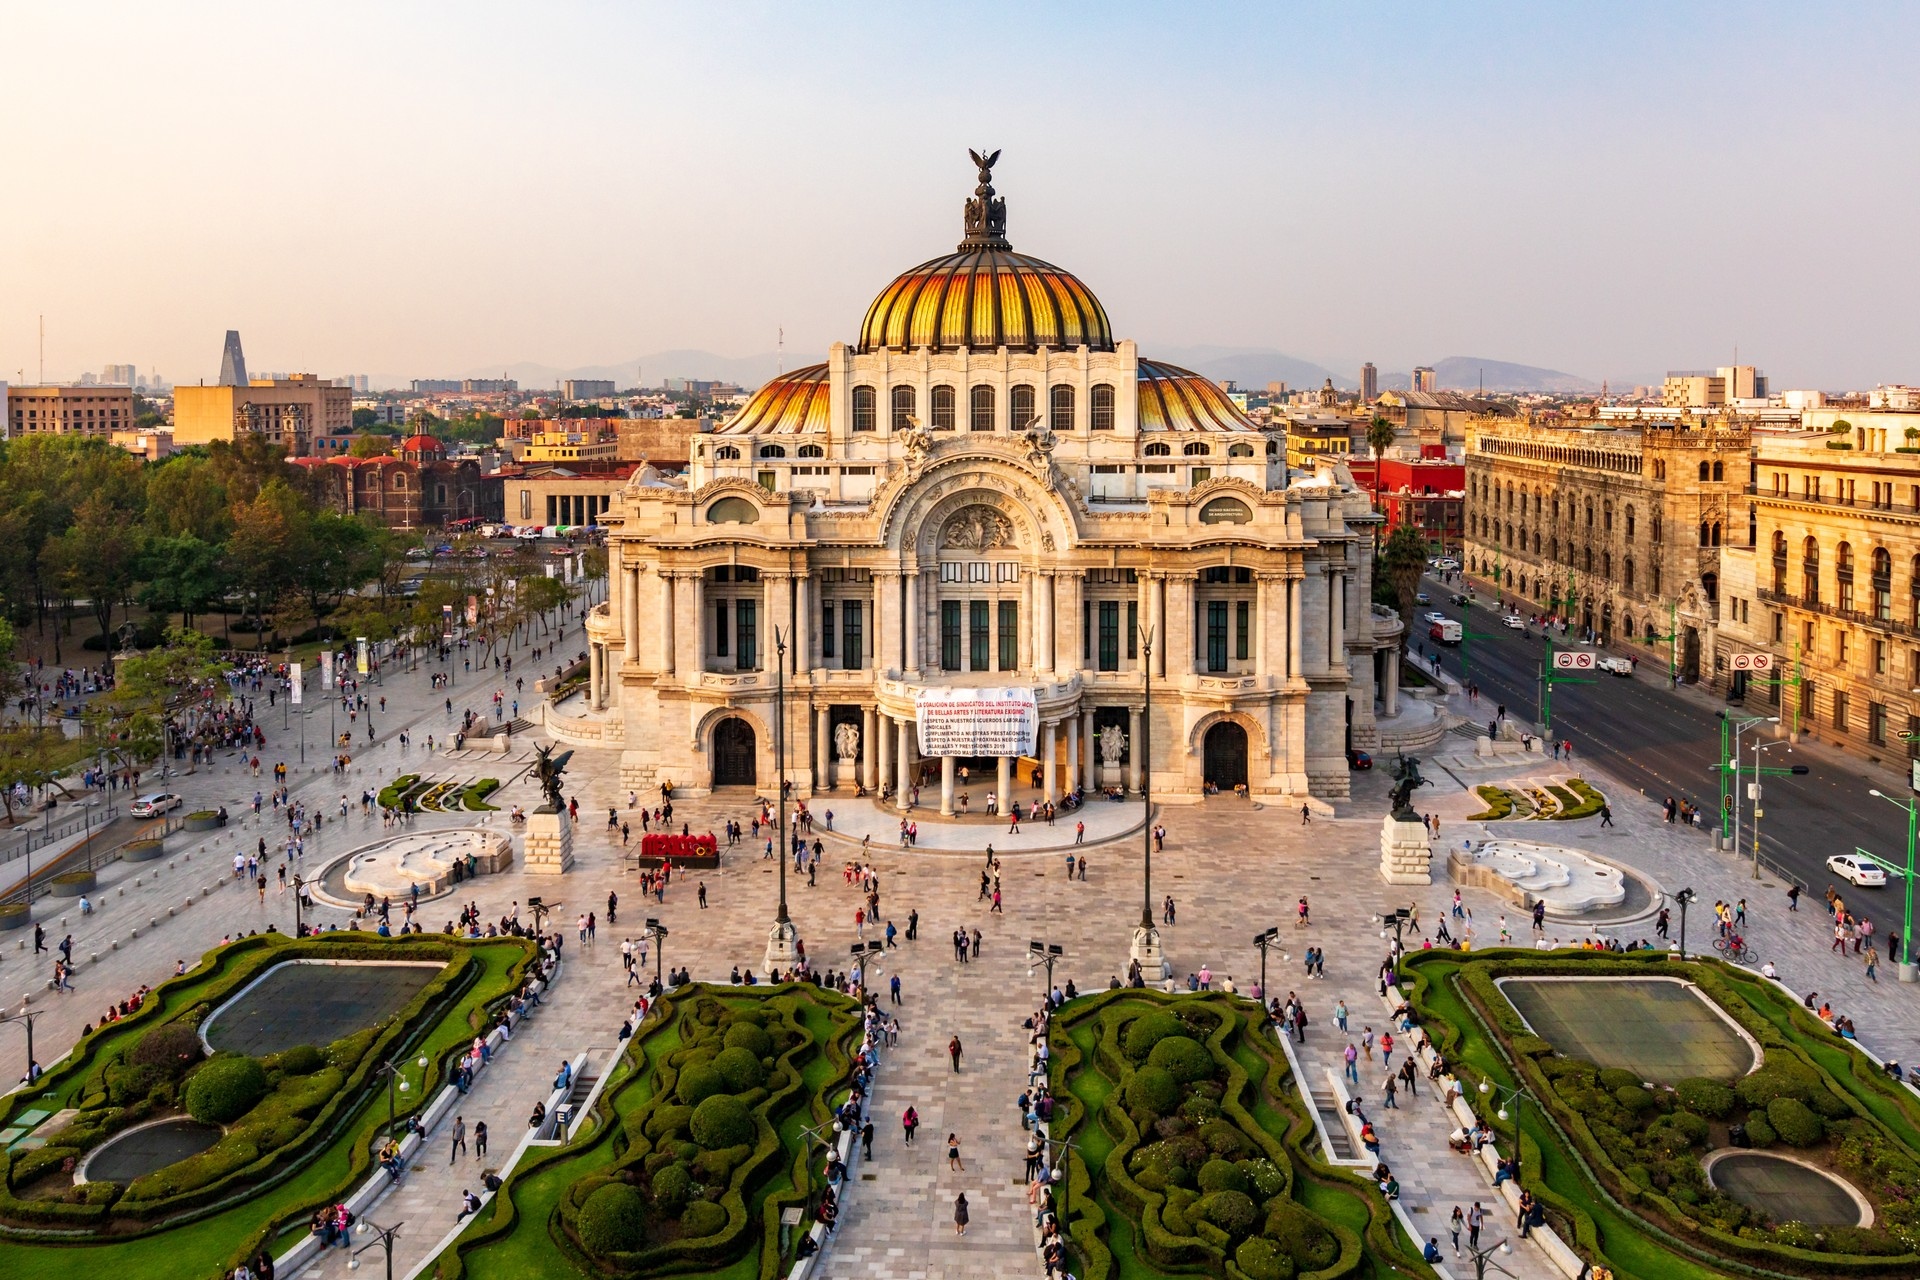 City Palacio de Bellas Artes - Holiday to Mexico City